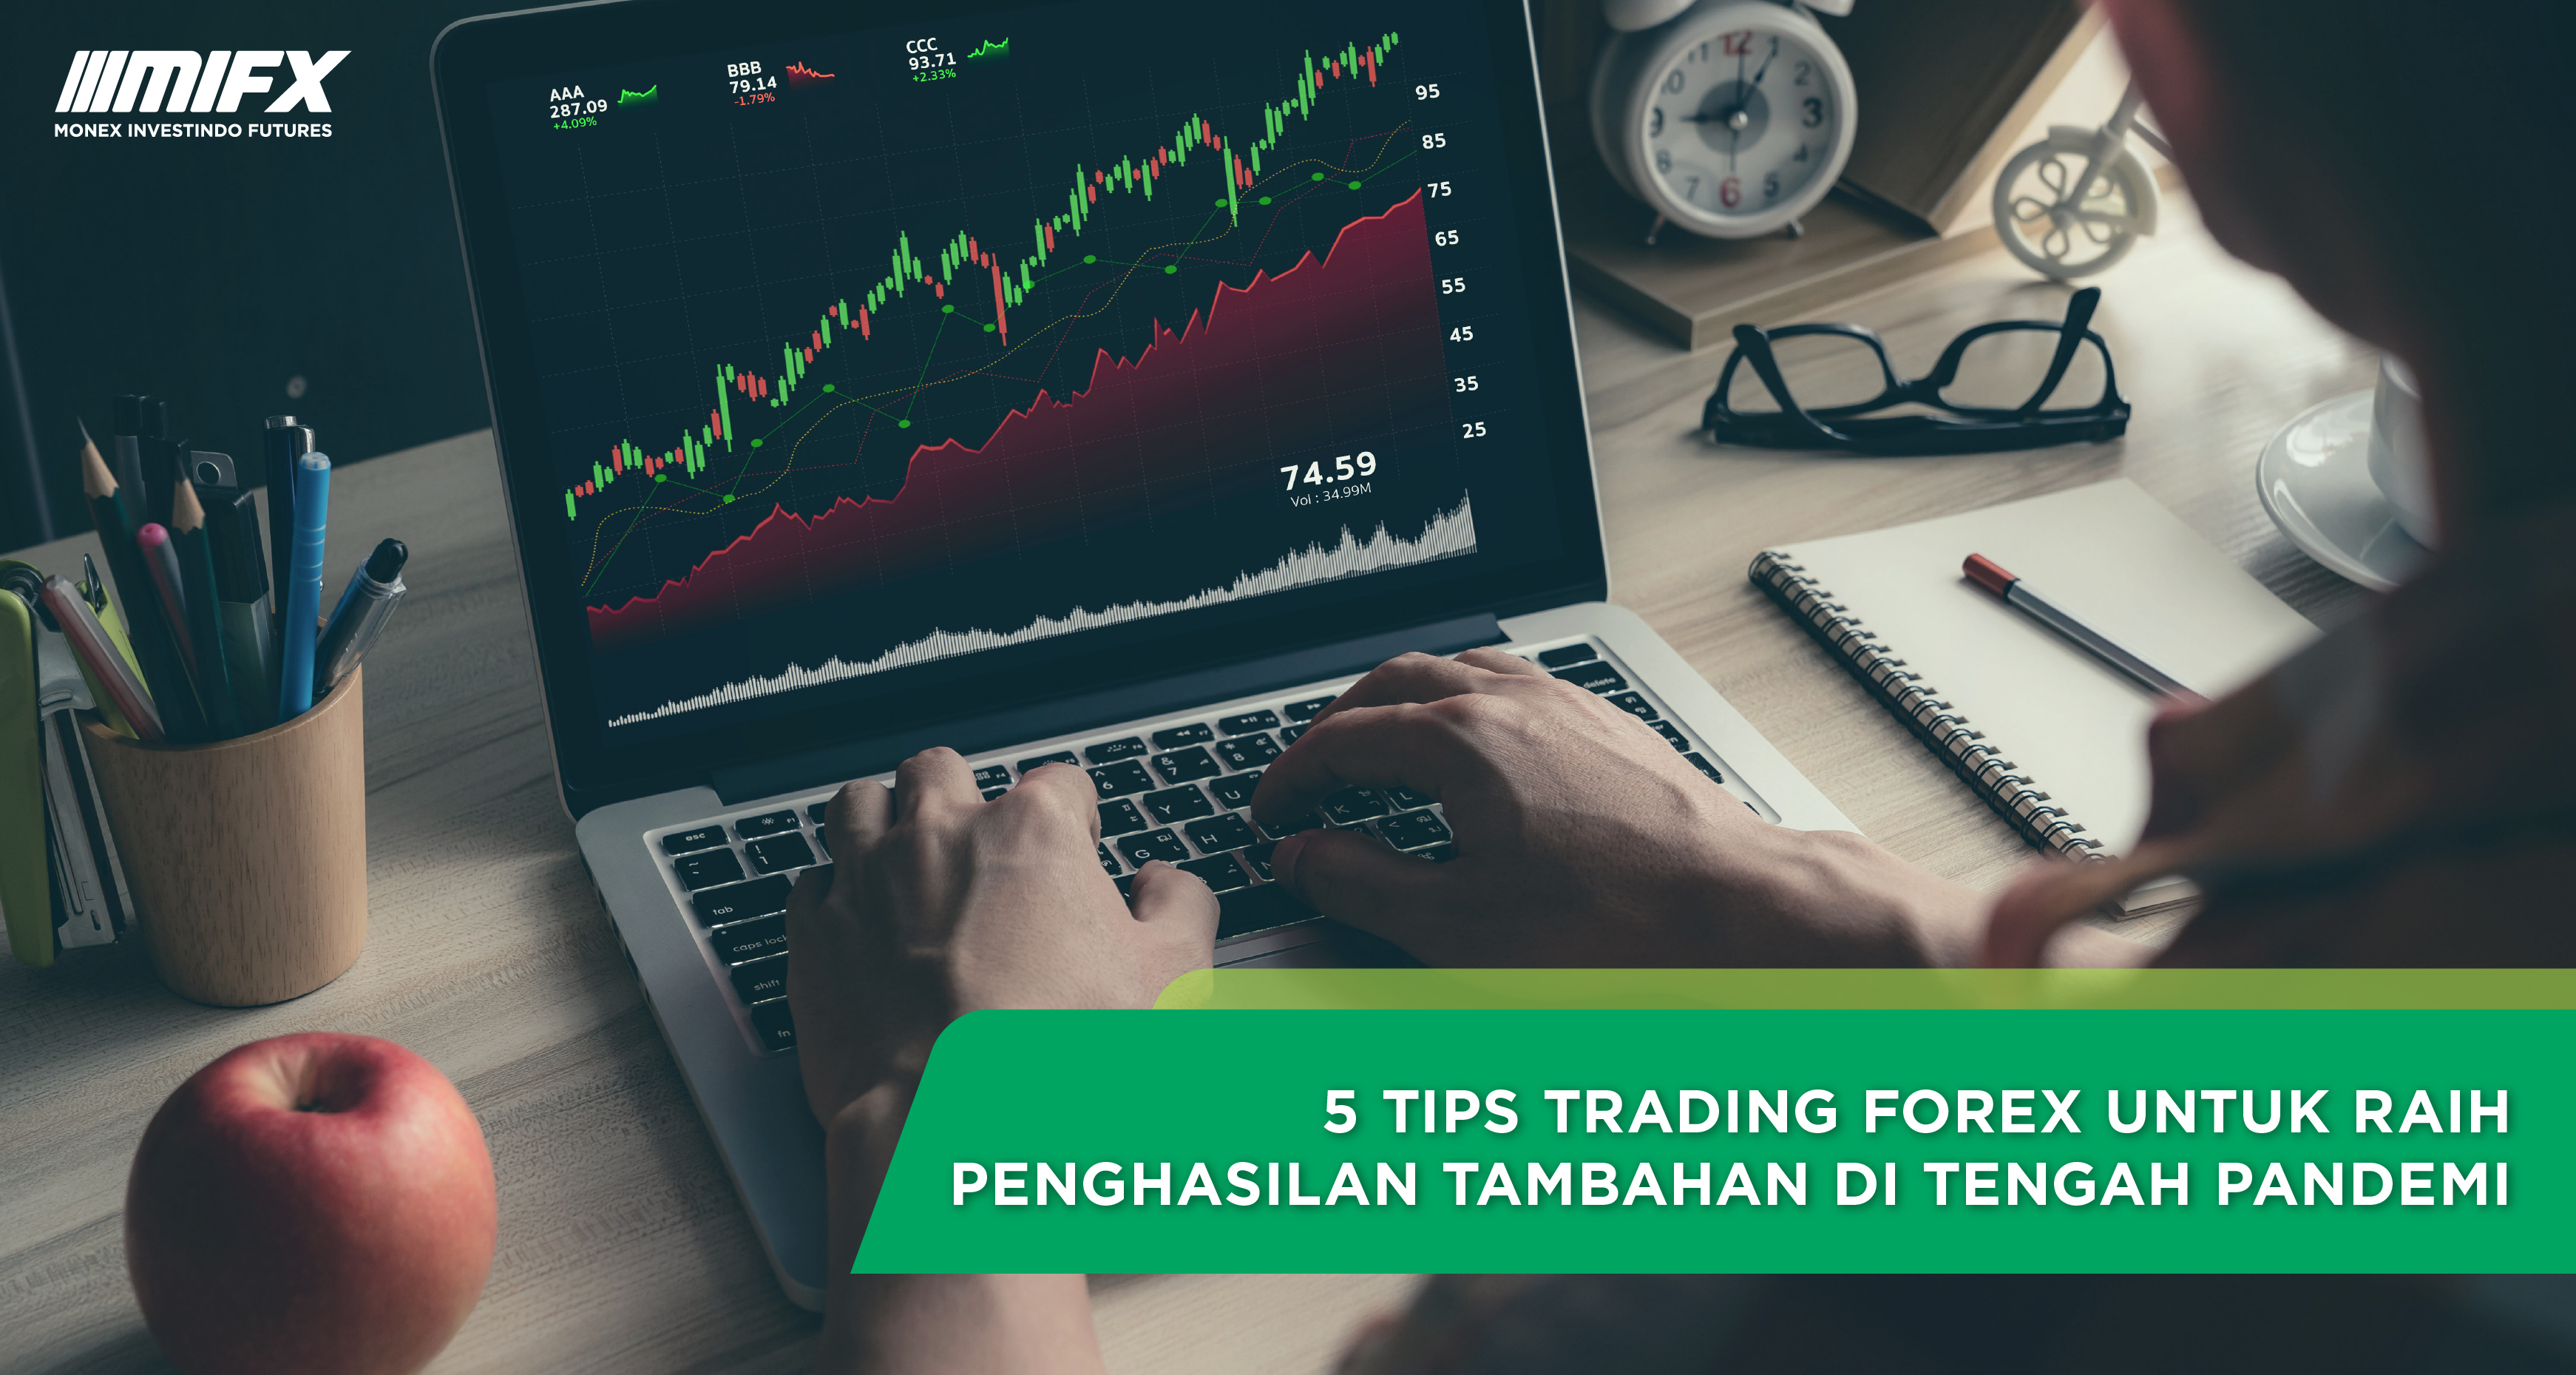 -article-05-tips-trading-forex1600170945.jpg